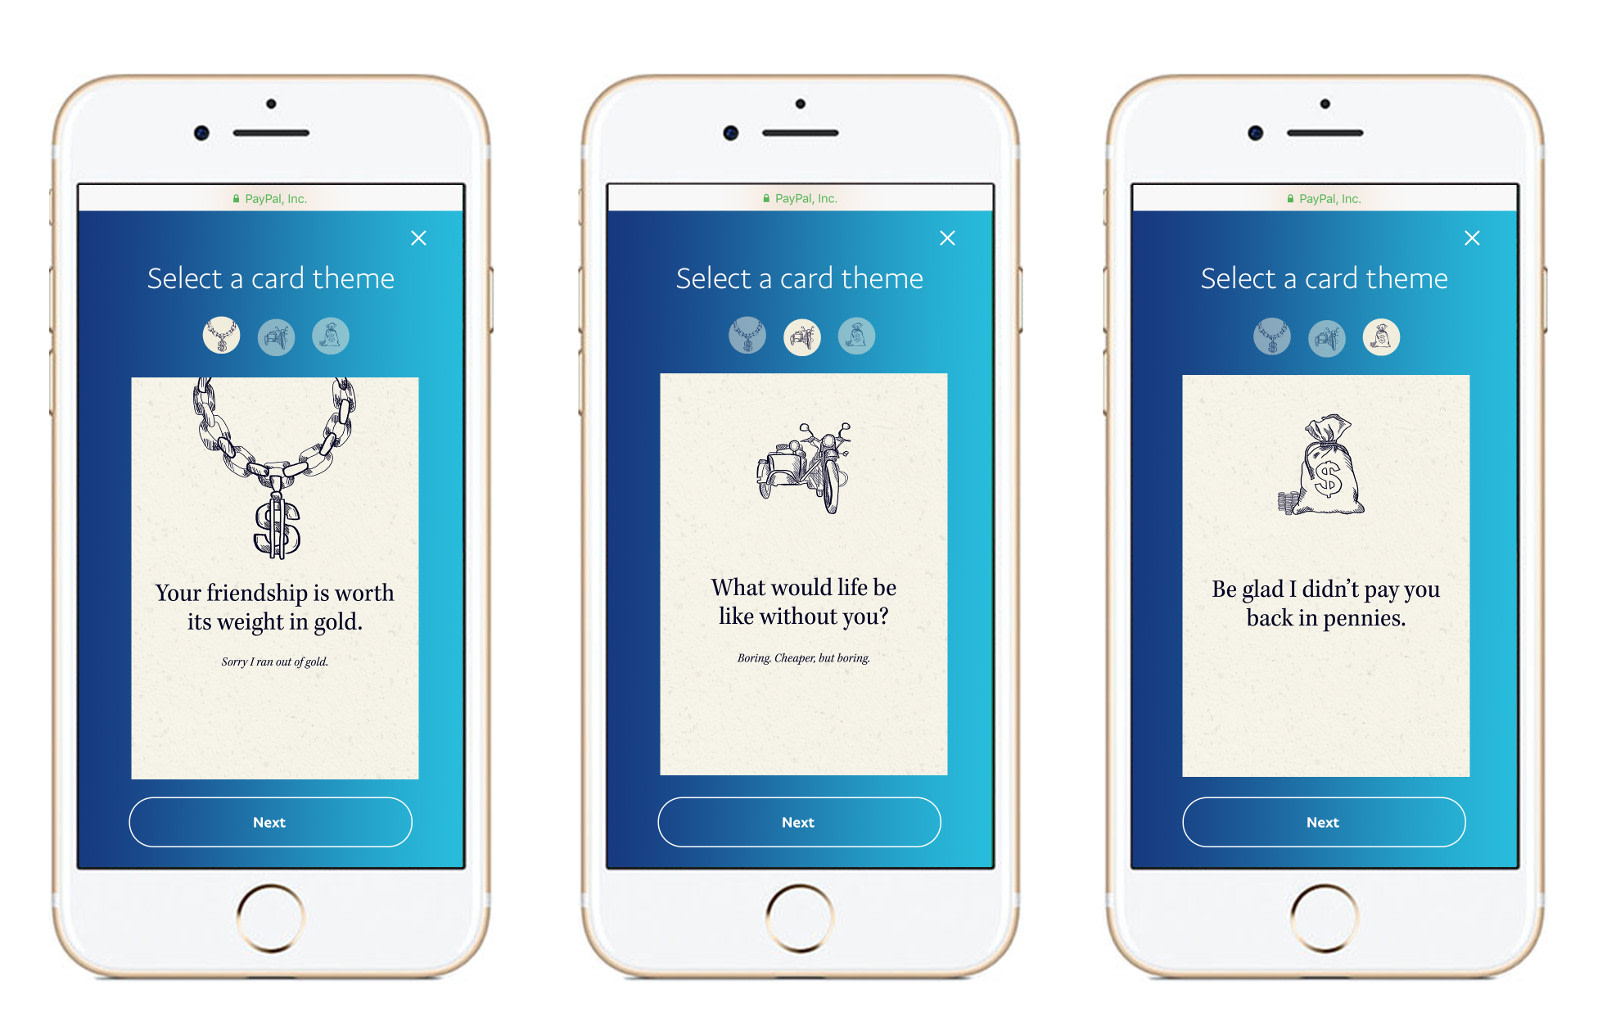 paypal made digital money cards to send to your friends